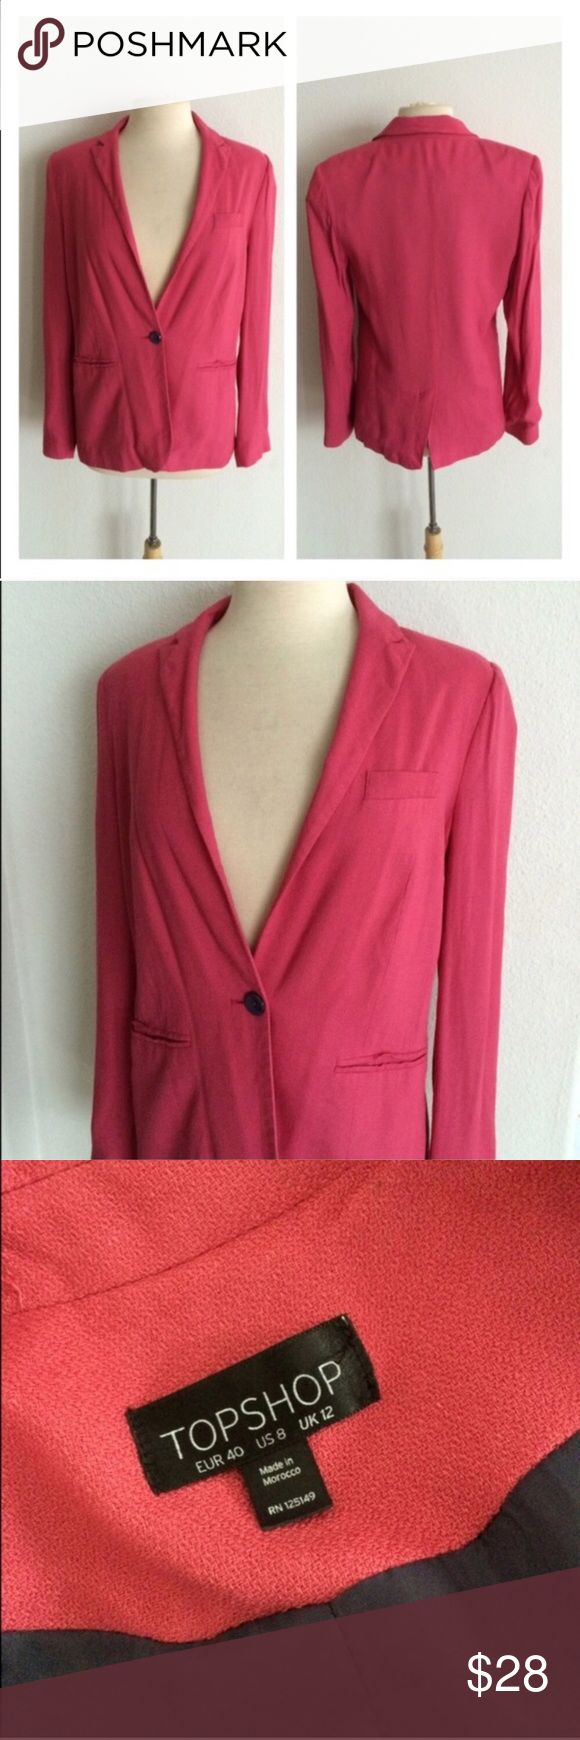 """Topshop pink blazer Topshop pink blazer. Size 8. Measures 27"""" long with a 38"""" bust. Front pockets aren't functional. Lightly padded shoulders. Plain charcoal gray lining. Exterior is 100% viscose and the lining is 100% polyester. Single button closure. Very good used condition!  🚫NO TRADES🚫 💲Reasonable offers accepted💲 💰Ask about bundle discounts💰 Topshop Jackets & Coats Blazers"""